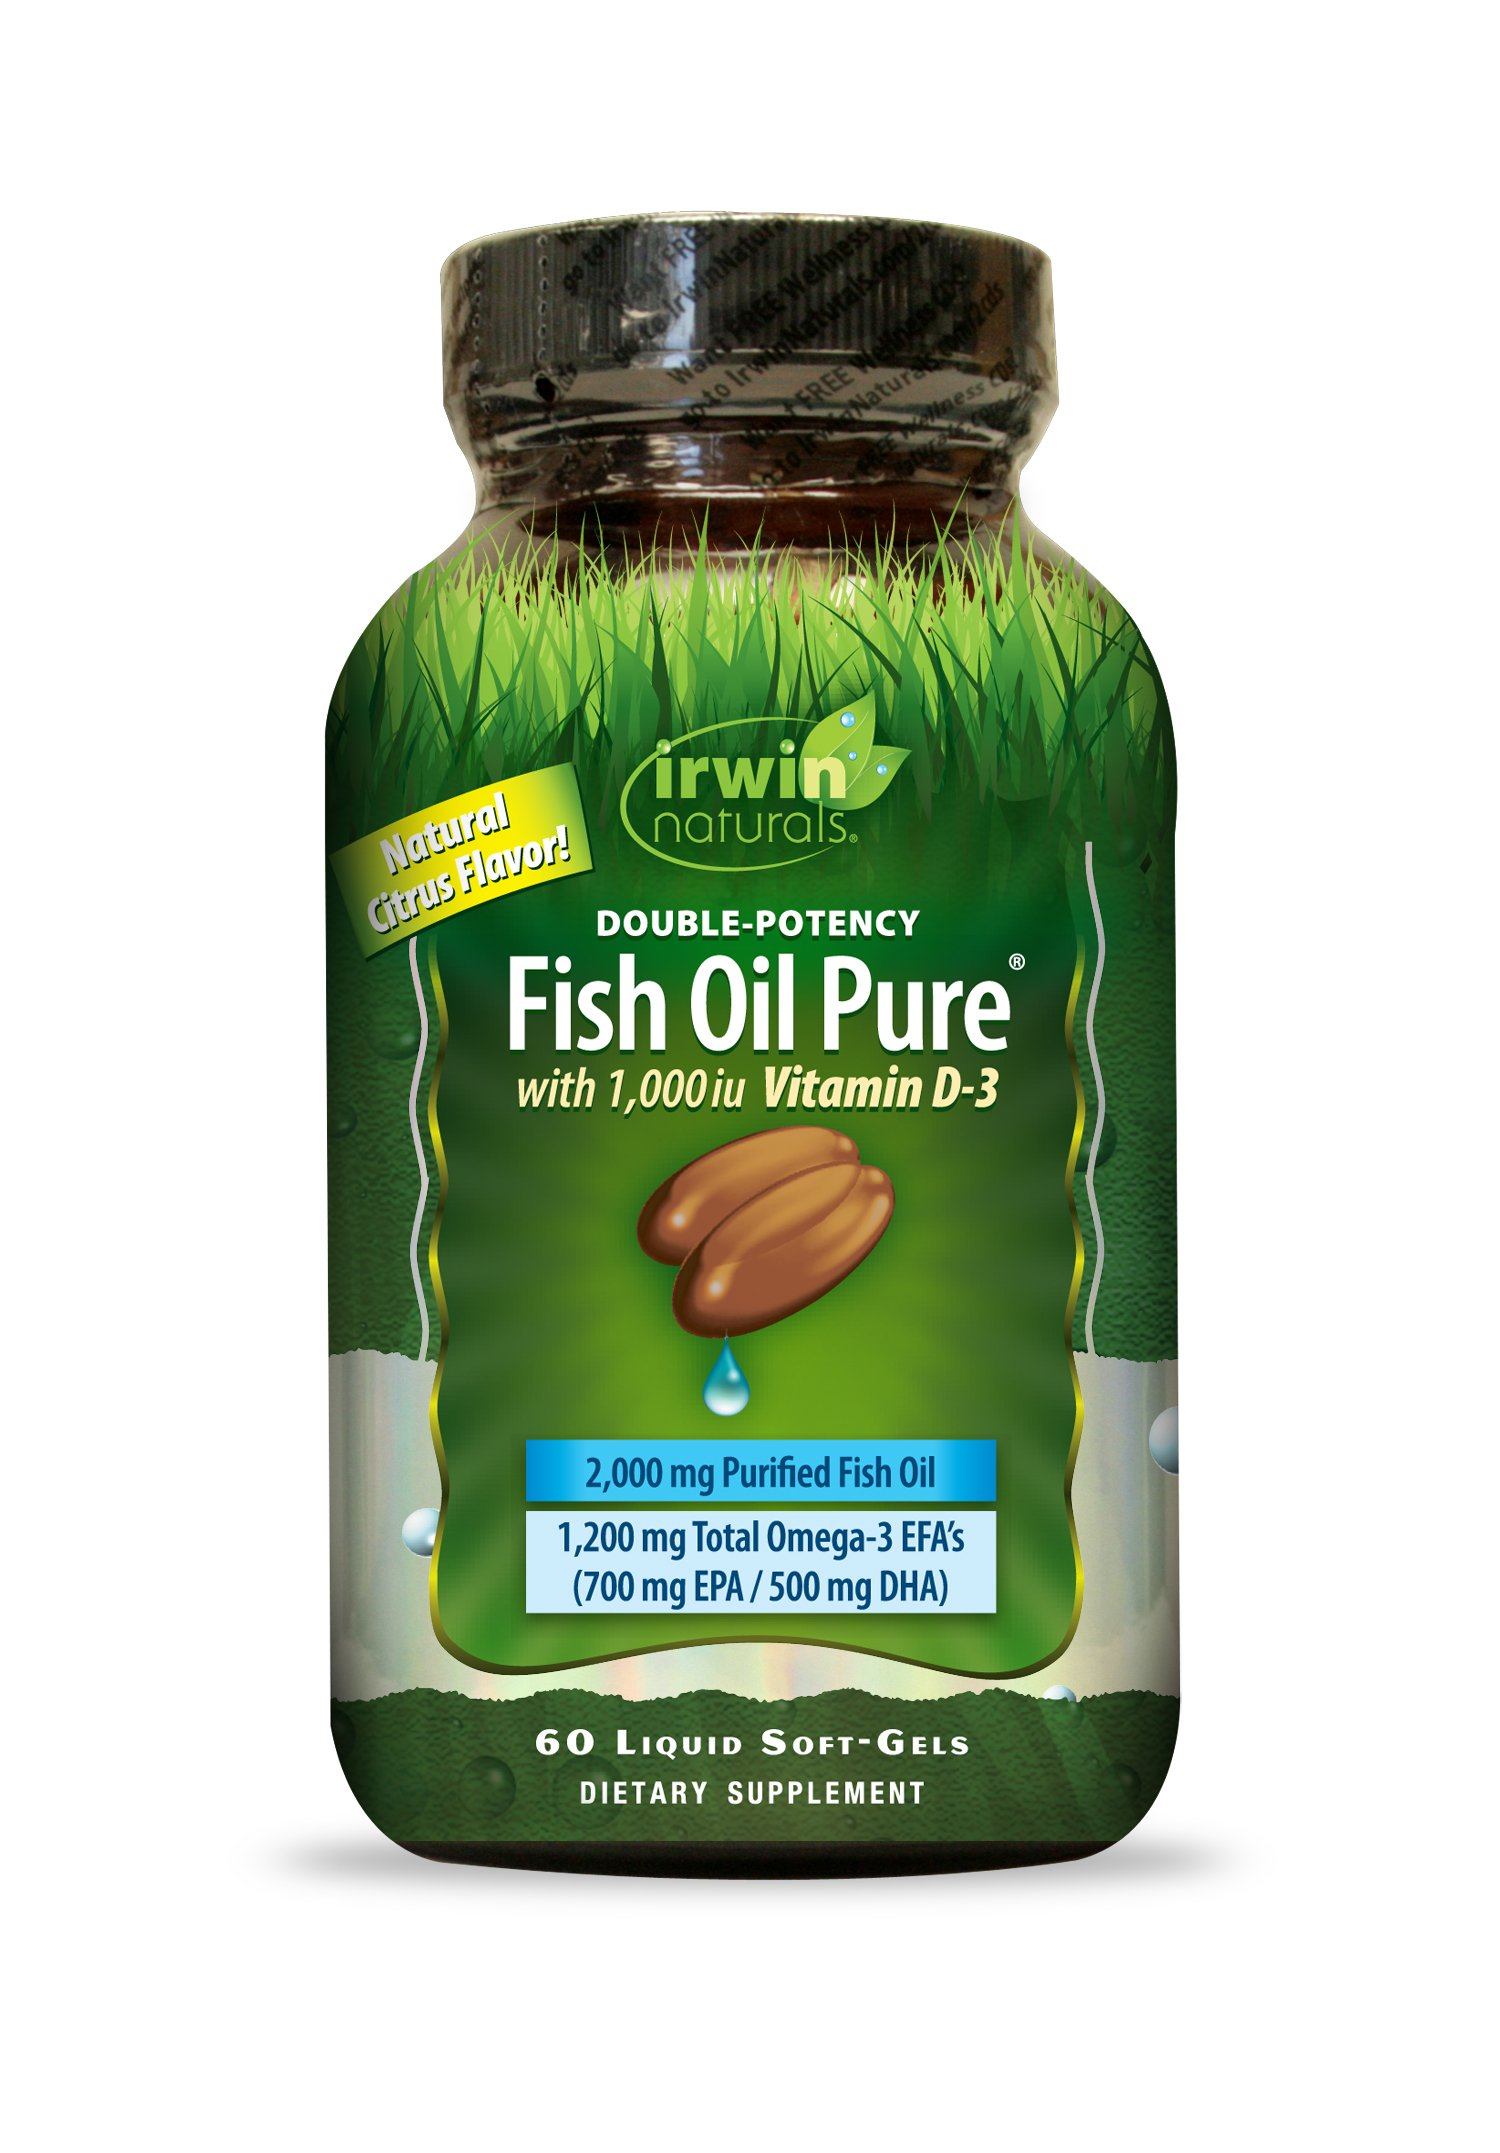 Double-Potency Fish Oil Pure by Irwin Naturals, Citrus Flavor with Vitamin D-3, 60 Liquid Soft-Gels